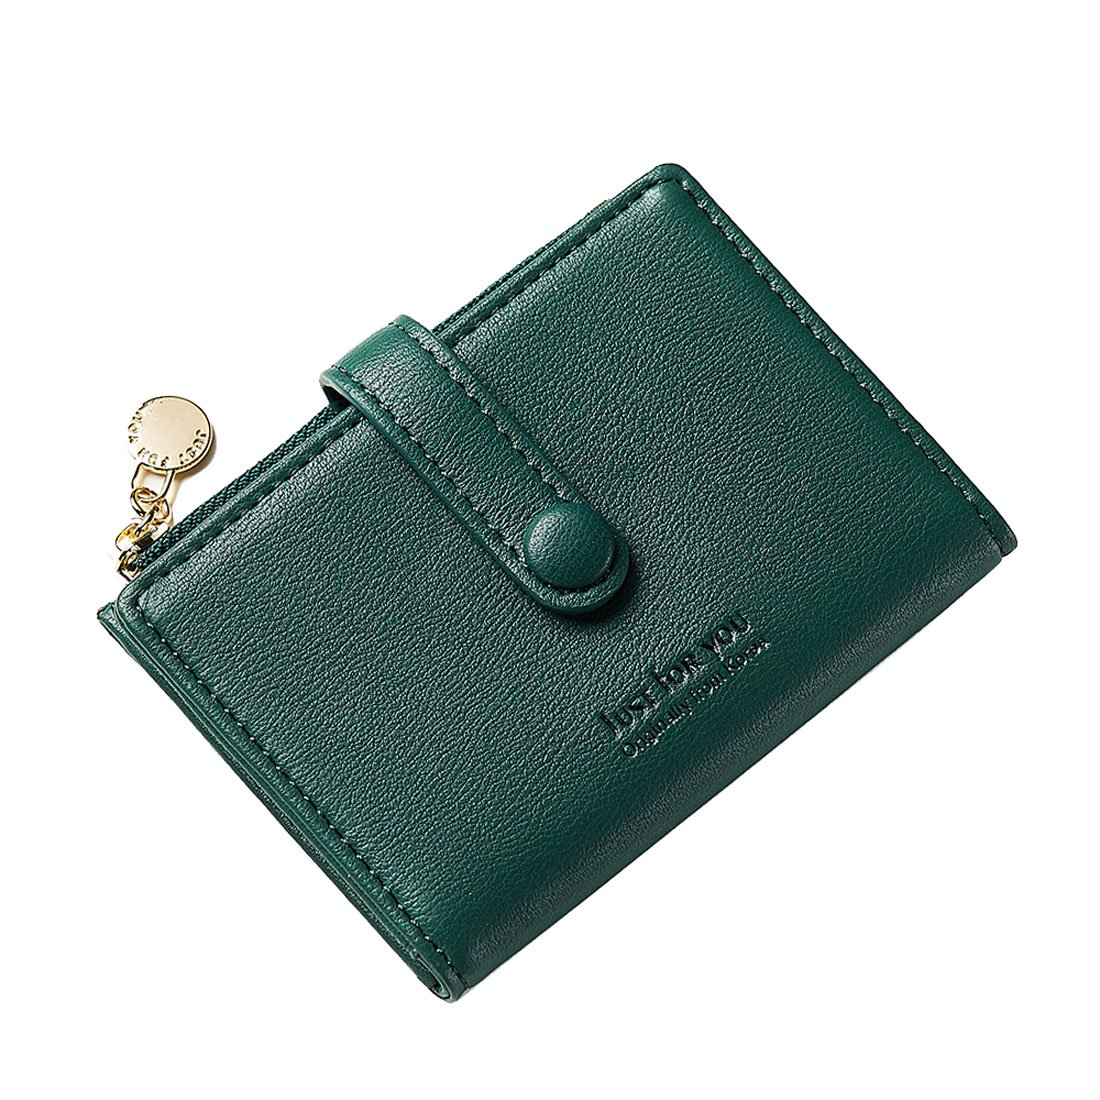 Slim Leather Wallet Credit Card Case Sleeve Card Holder Mini Purse Compact Pocket With ID Window For Cards Coin Darkgreen